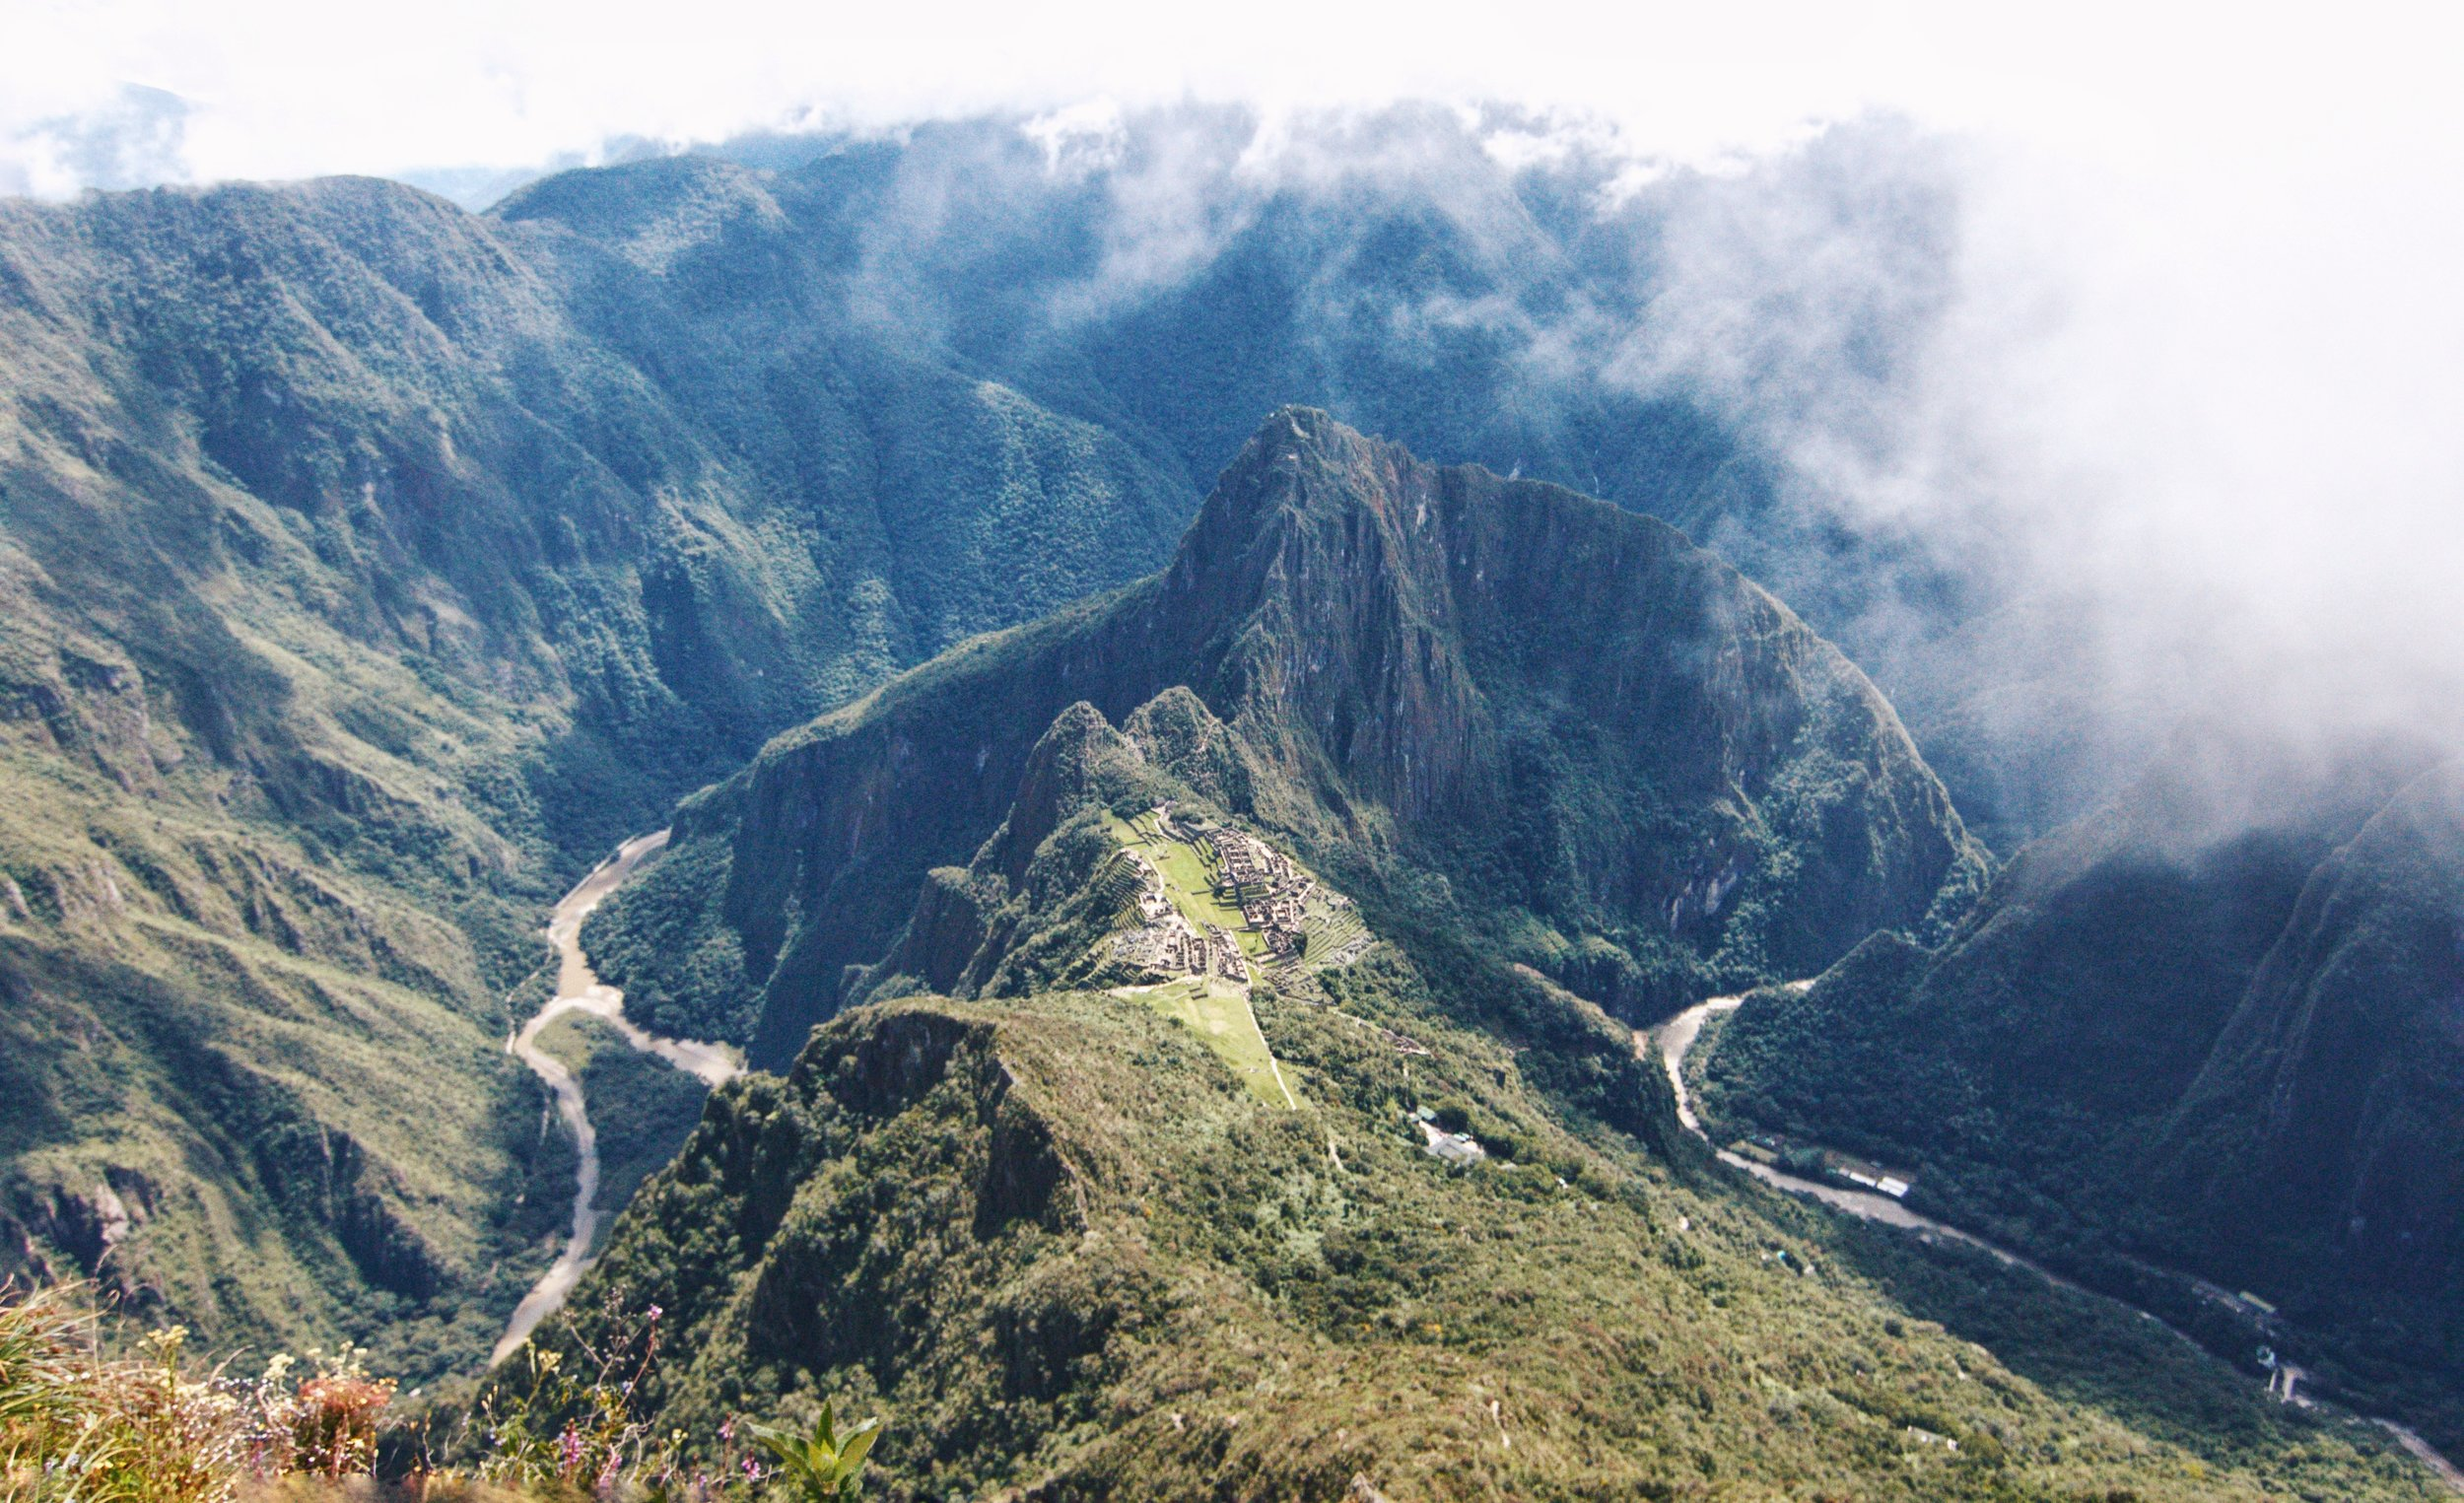 DAY 6:DISCOVERTHE LOST CITY - AGUAS CALIENTES to MACHU PICCHU to CUSCOElevation: 2,050 - 2,430 - 3,400 m